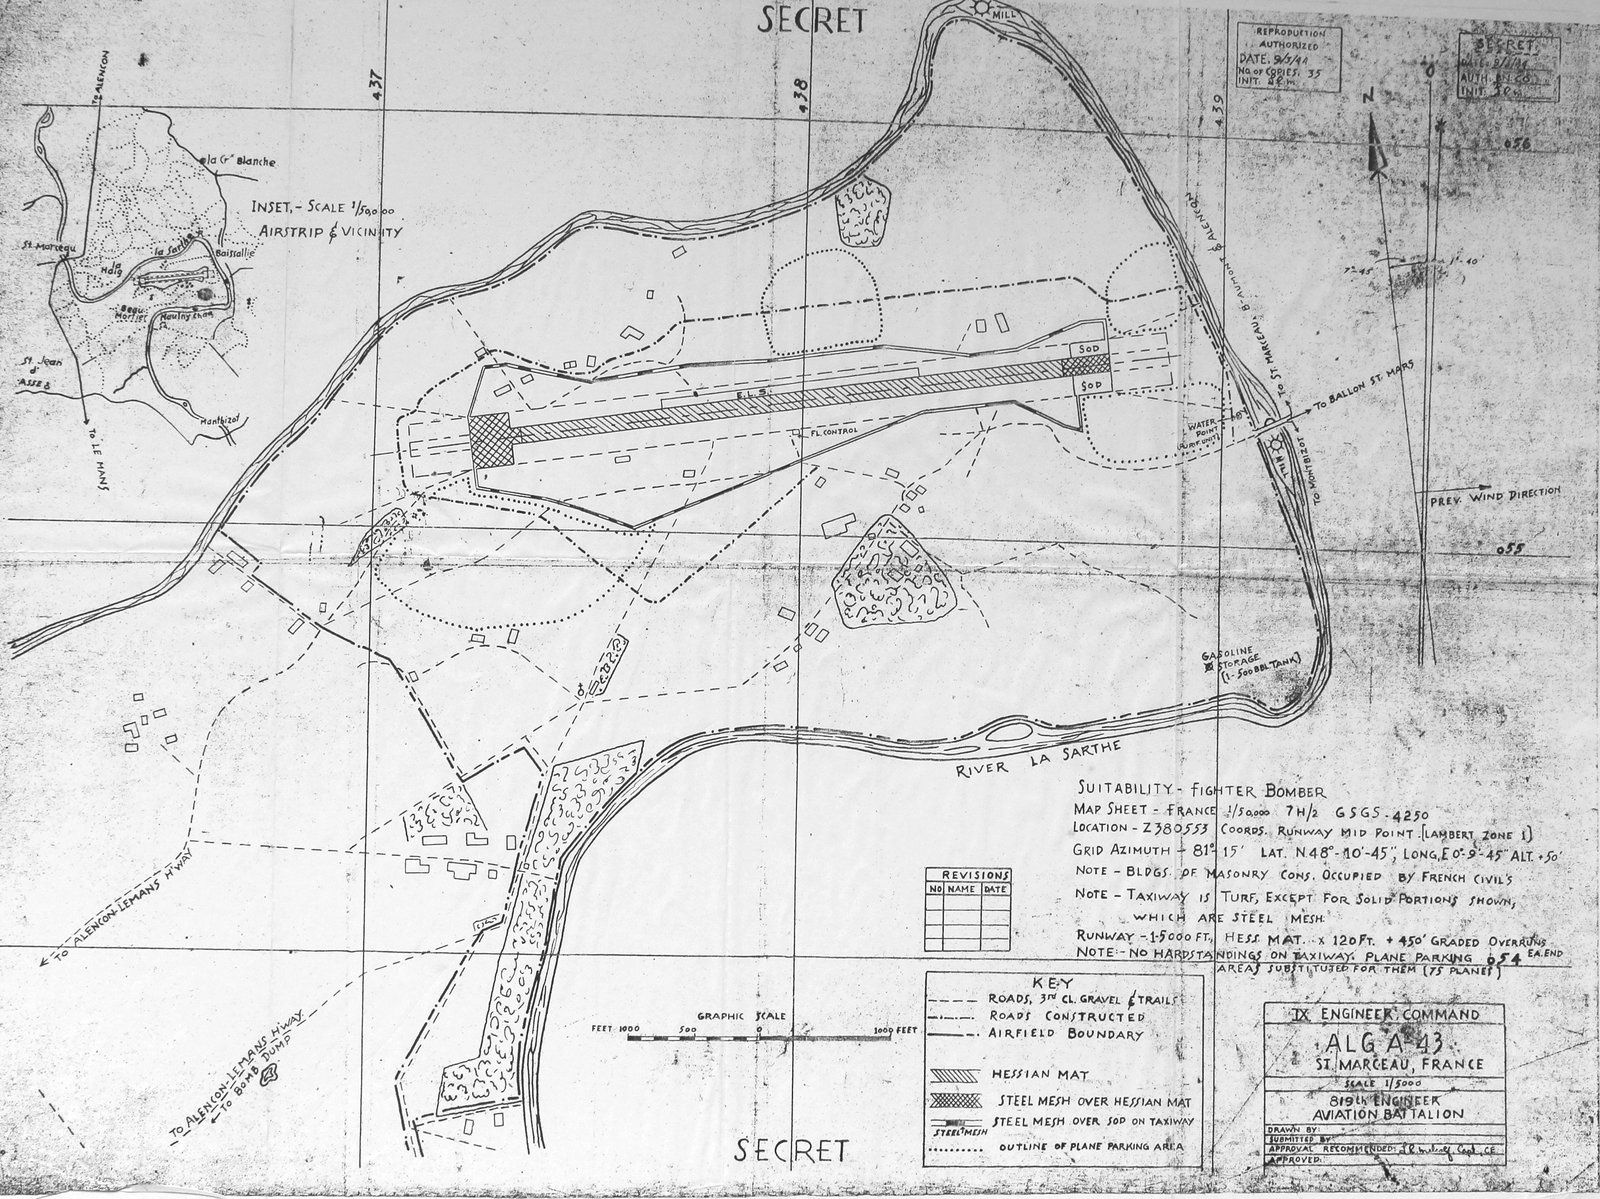 Le plan américain dessiné par le 819th Engineer Aviation Battalion